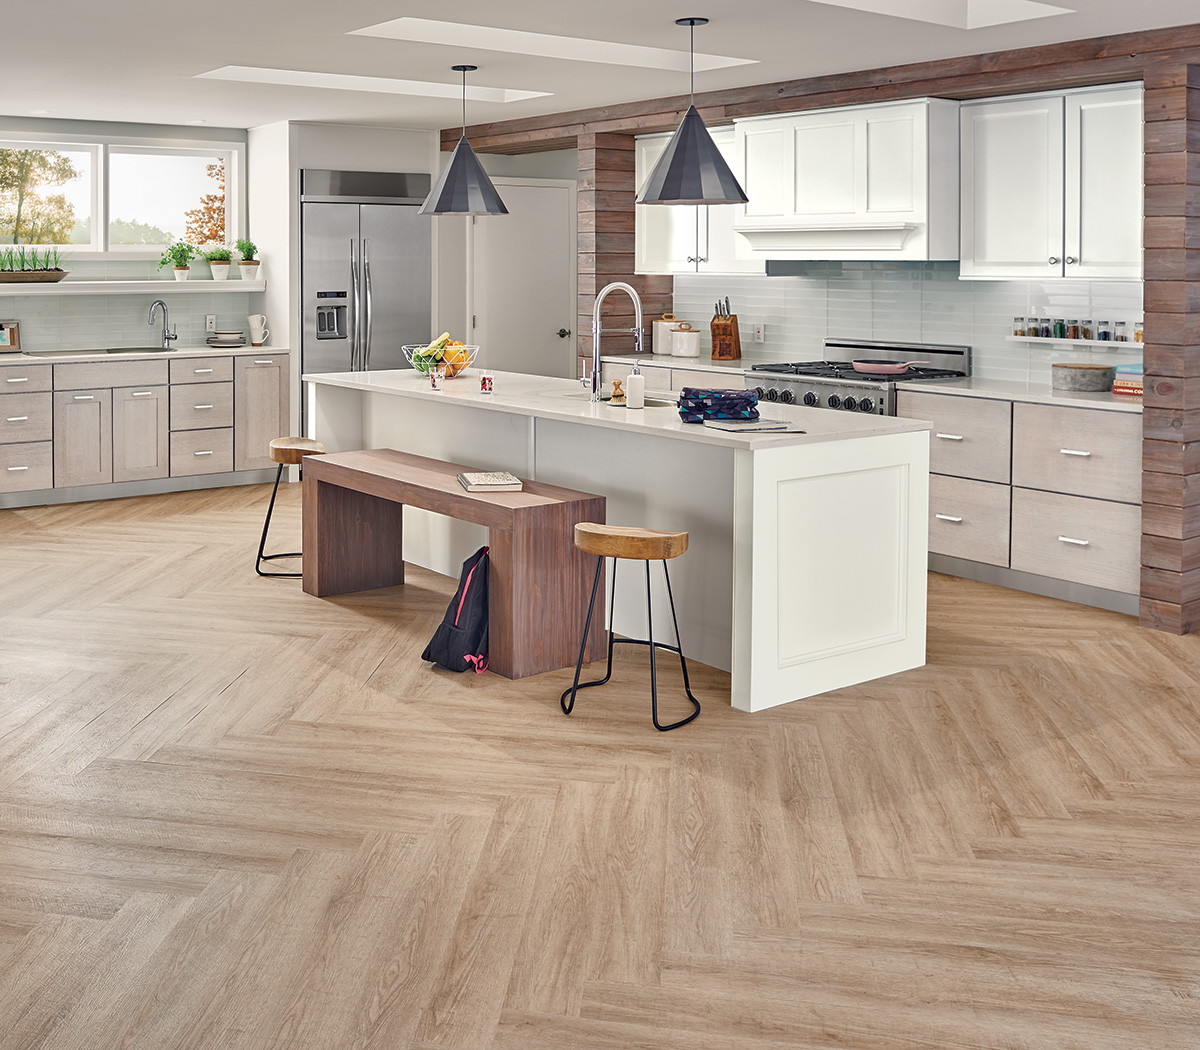 Design Kitchen Cabinet Online: Before Or After Cabinet Installation? Four Considerations